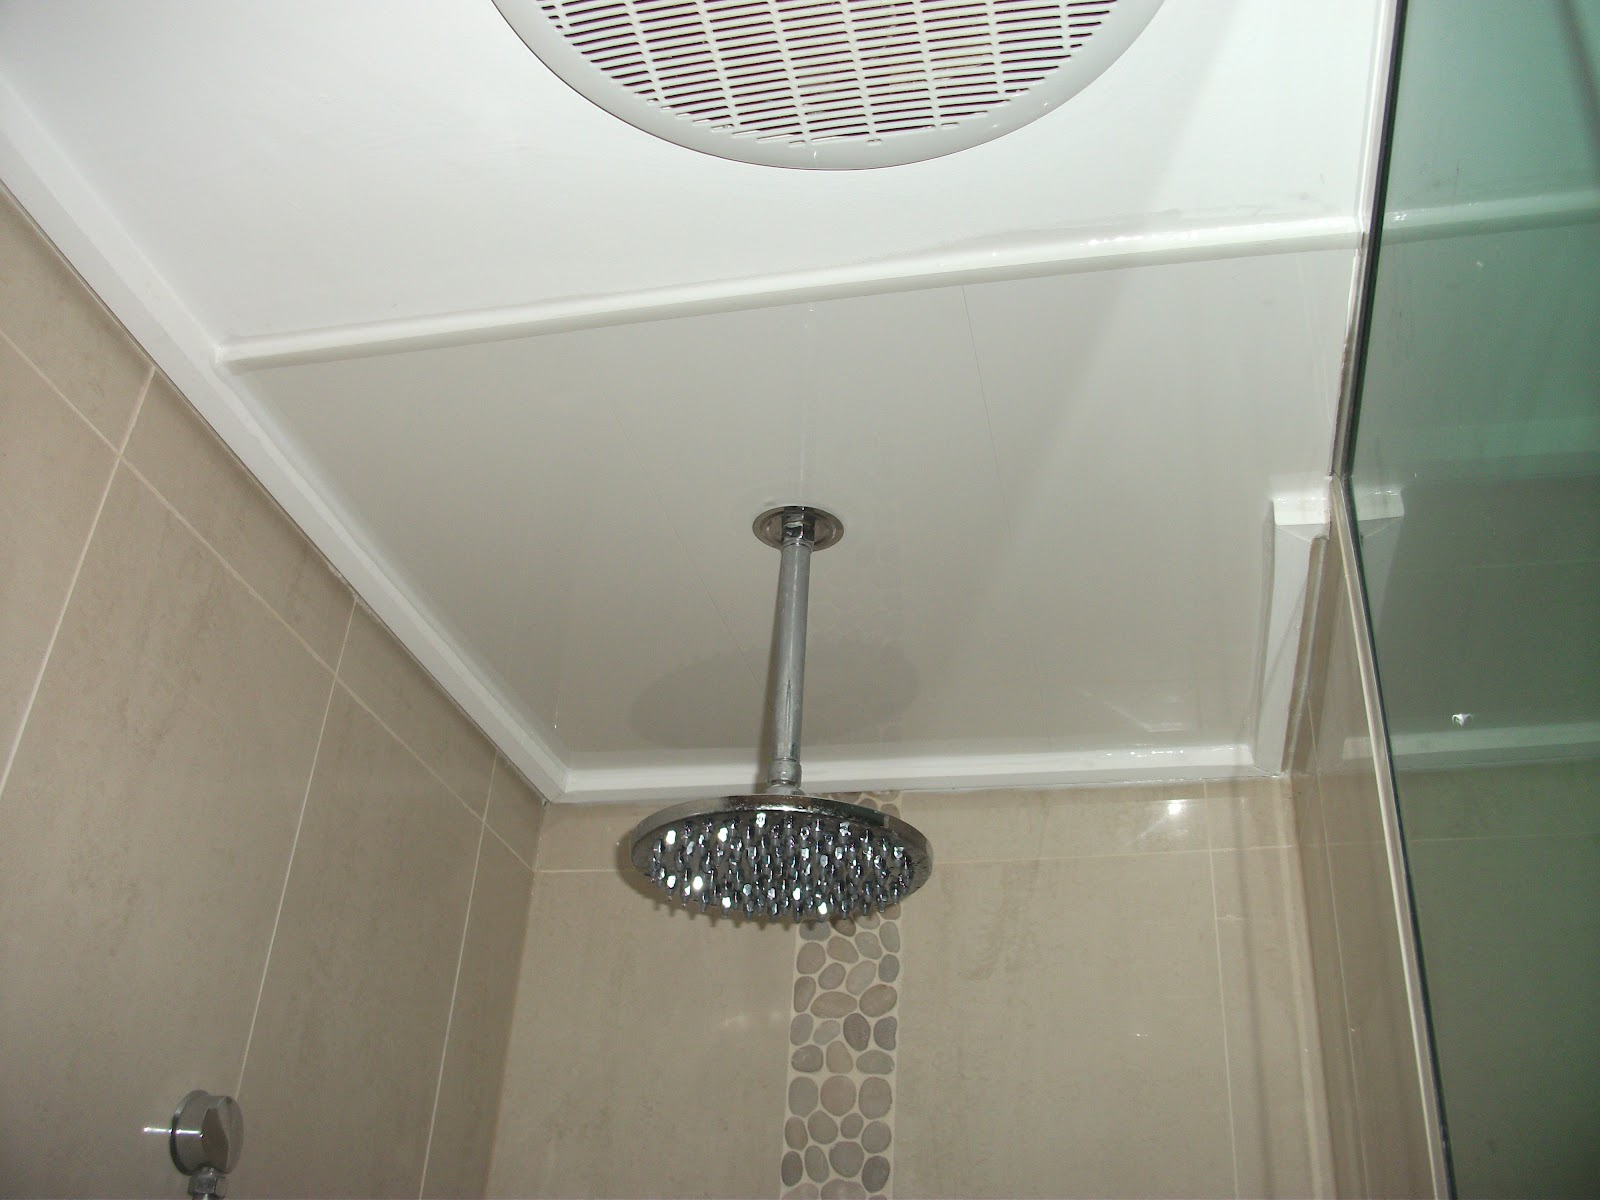 Superieur Panelscape Shower Ceiling Repair